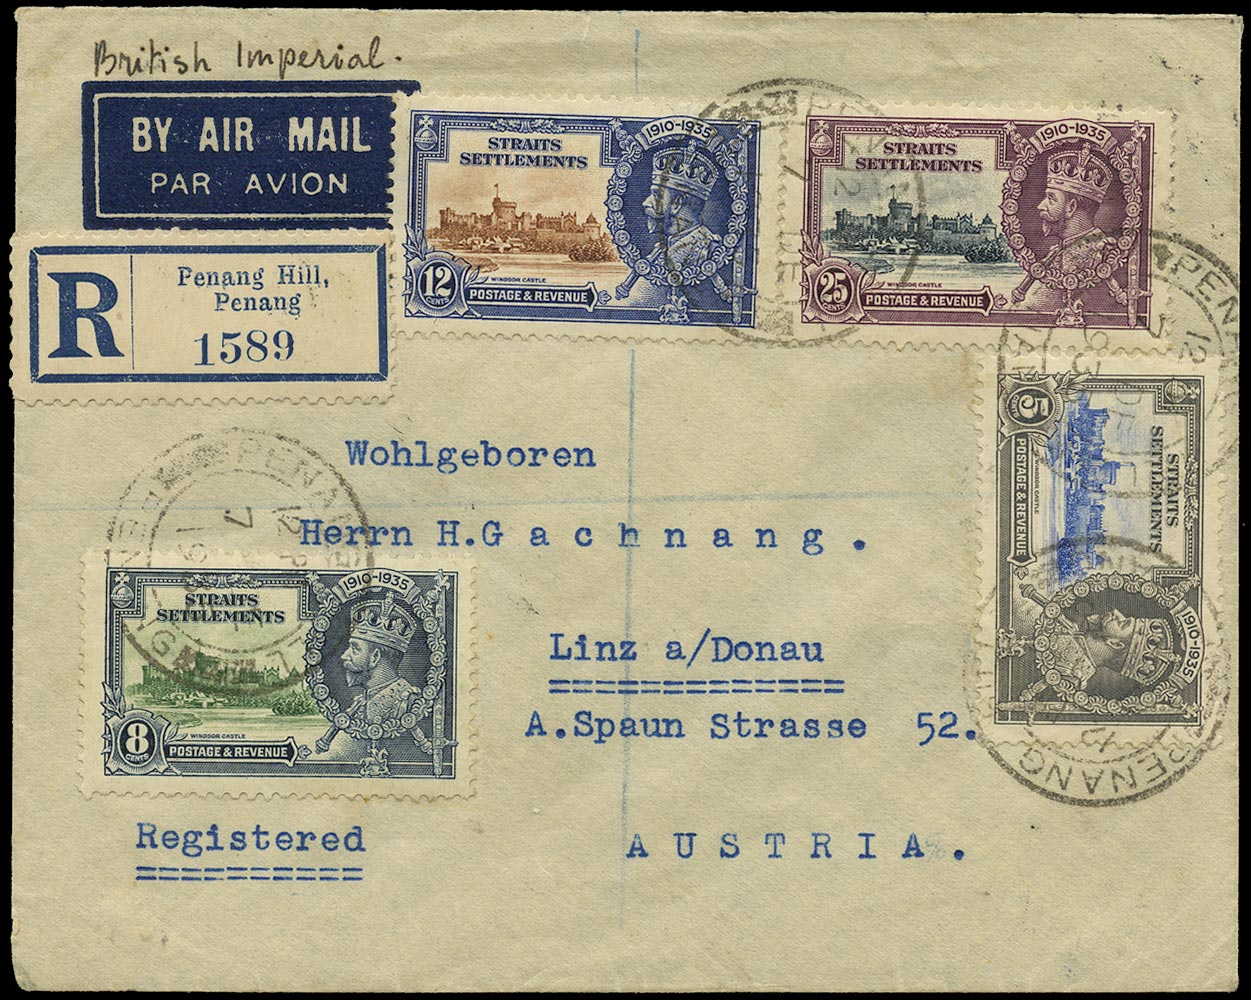 MALAYA - STRAITS 1935  SG256/59 Cover from Penang Hill to Austria with 1935 Silver Jubilee franking